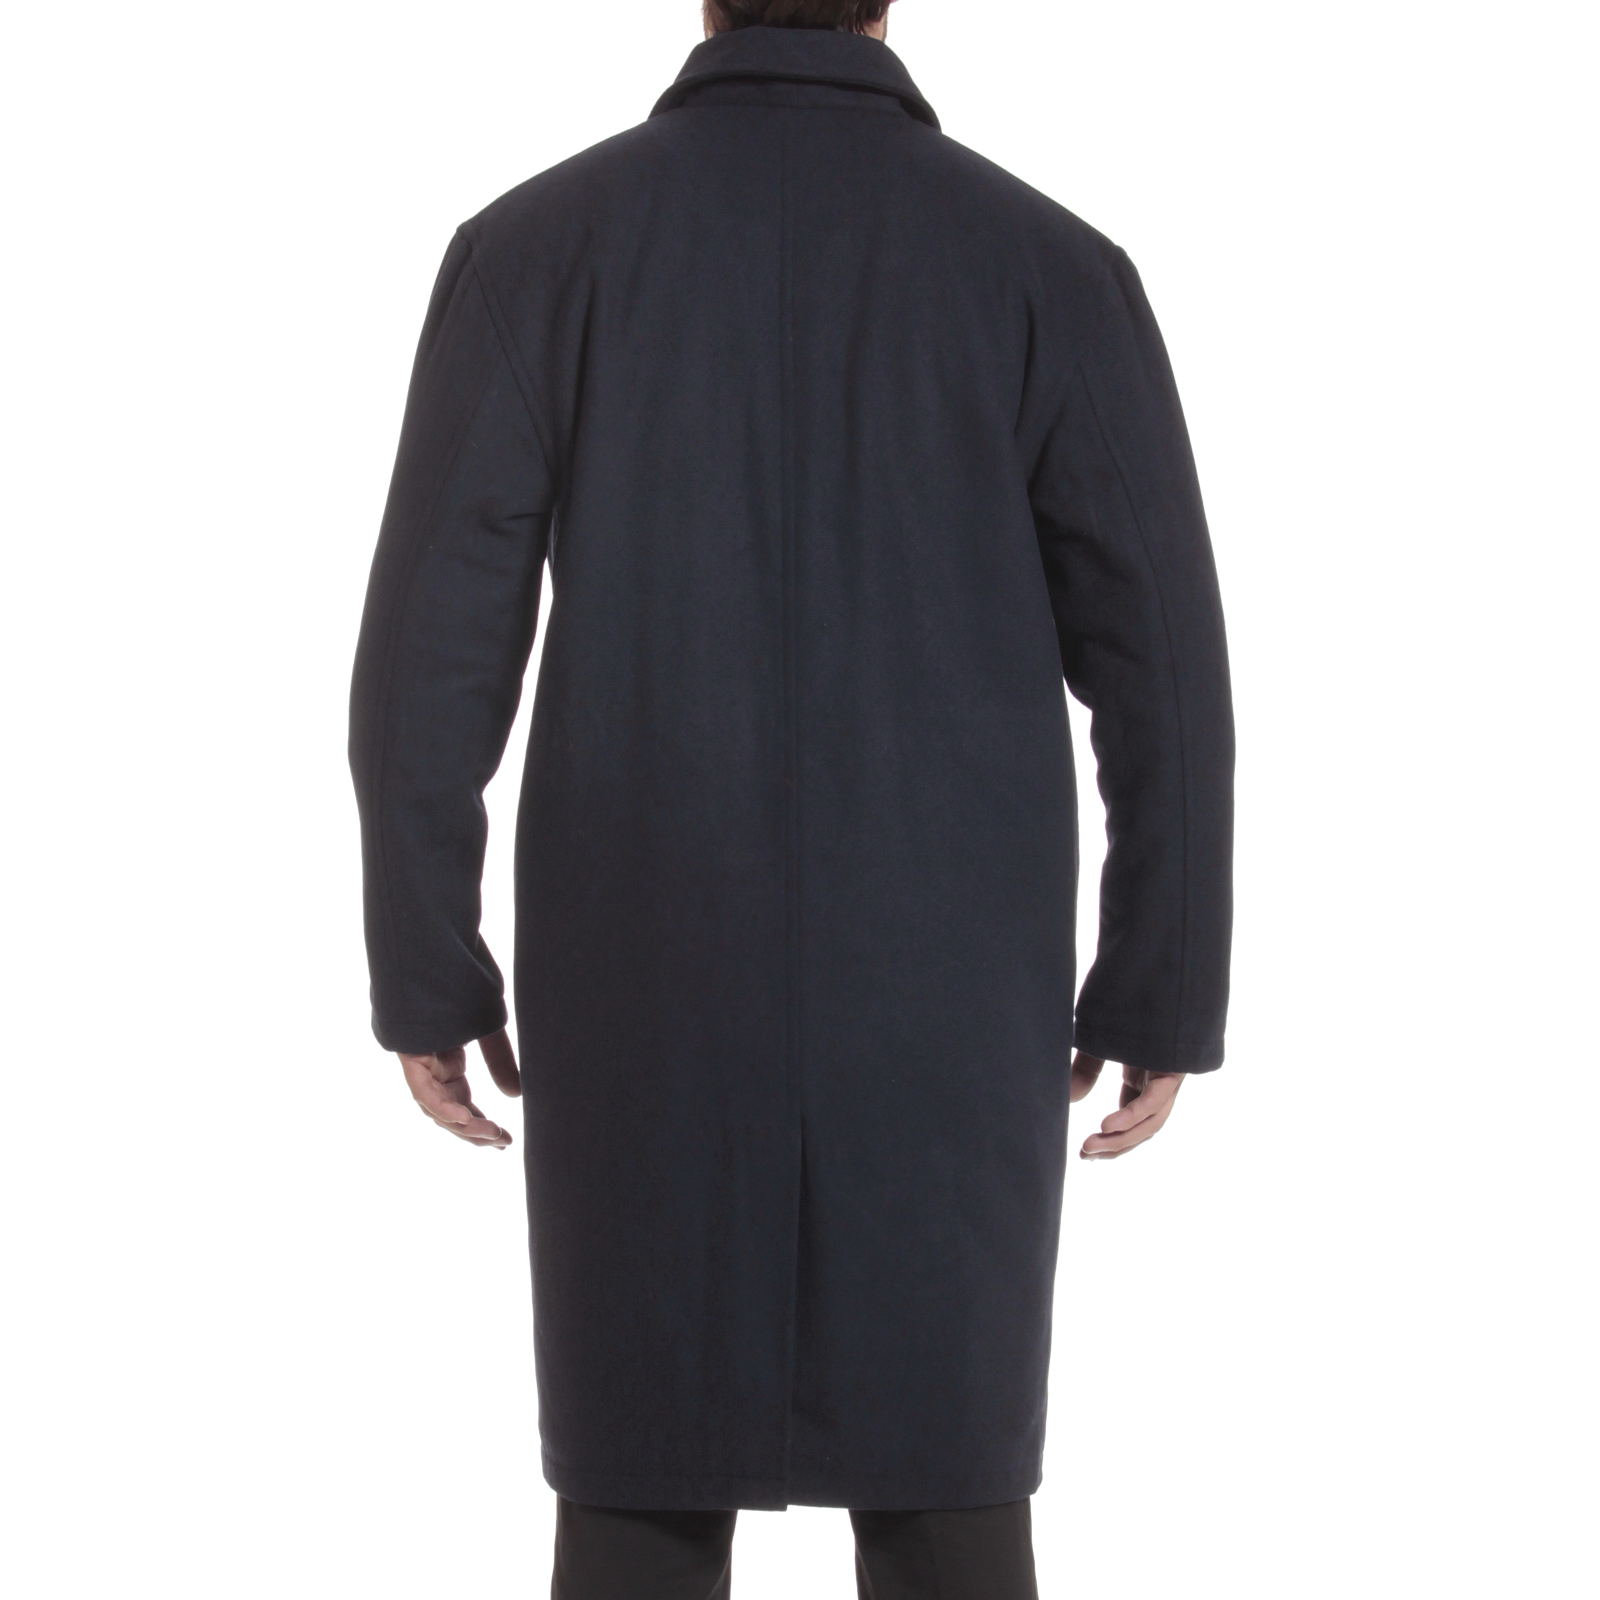 Alpine-Swiss-Mens-Zach-Knee-Length-Jacket-Top-Coat-Trench-Wool-Blend-Overcoat thumbnail 46